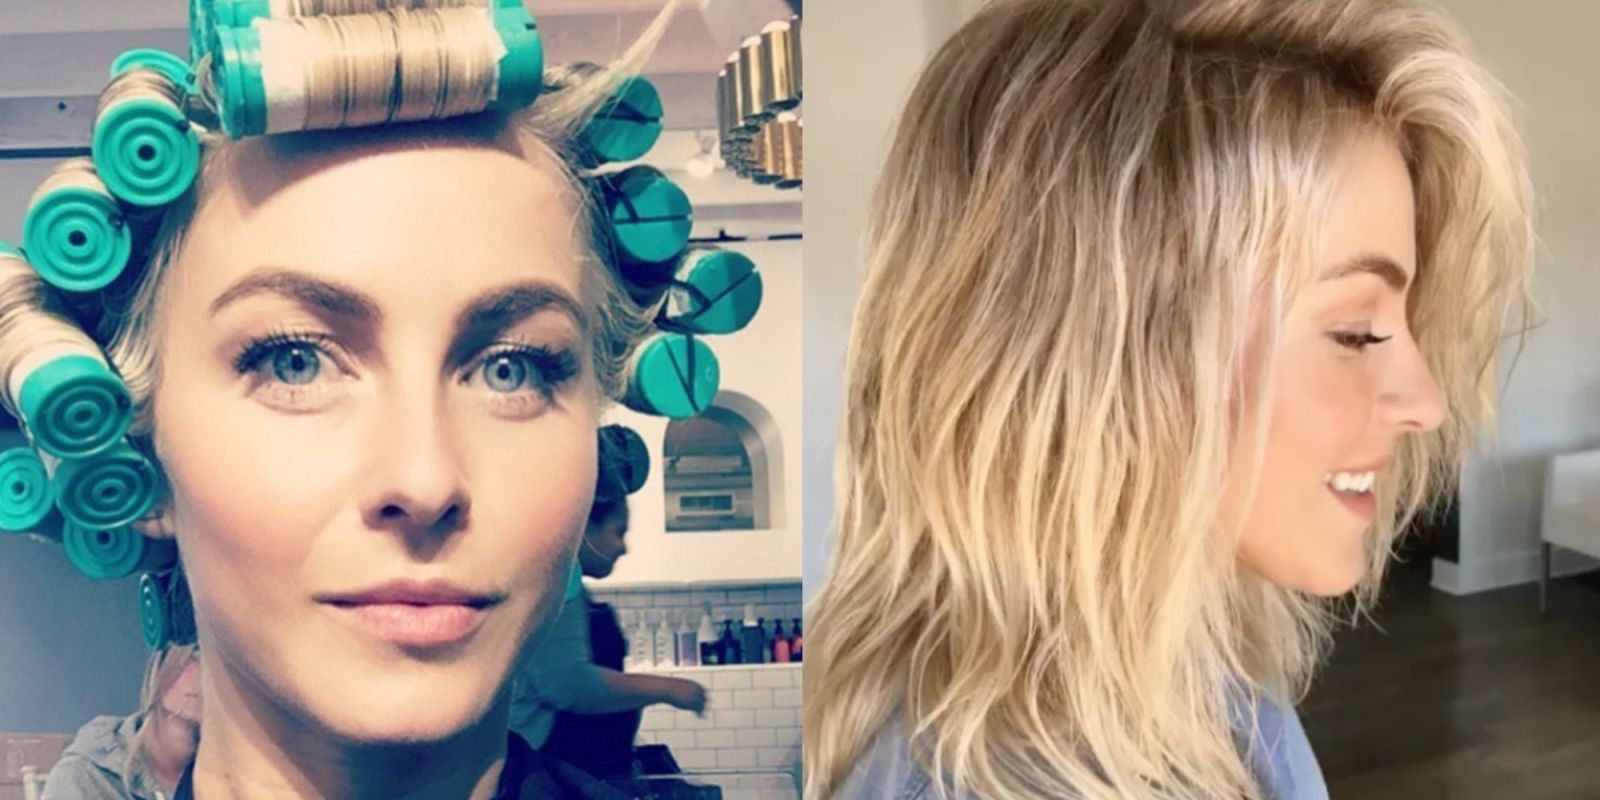 Julianne Hough S New Hairstyle Is Changing The Way We